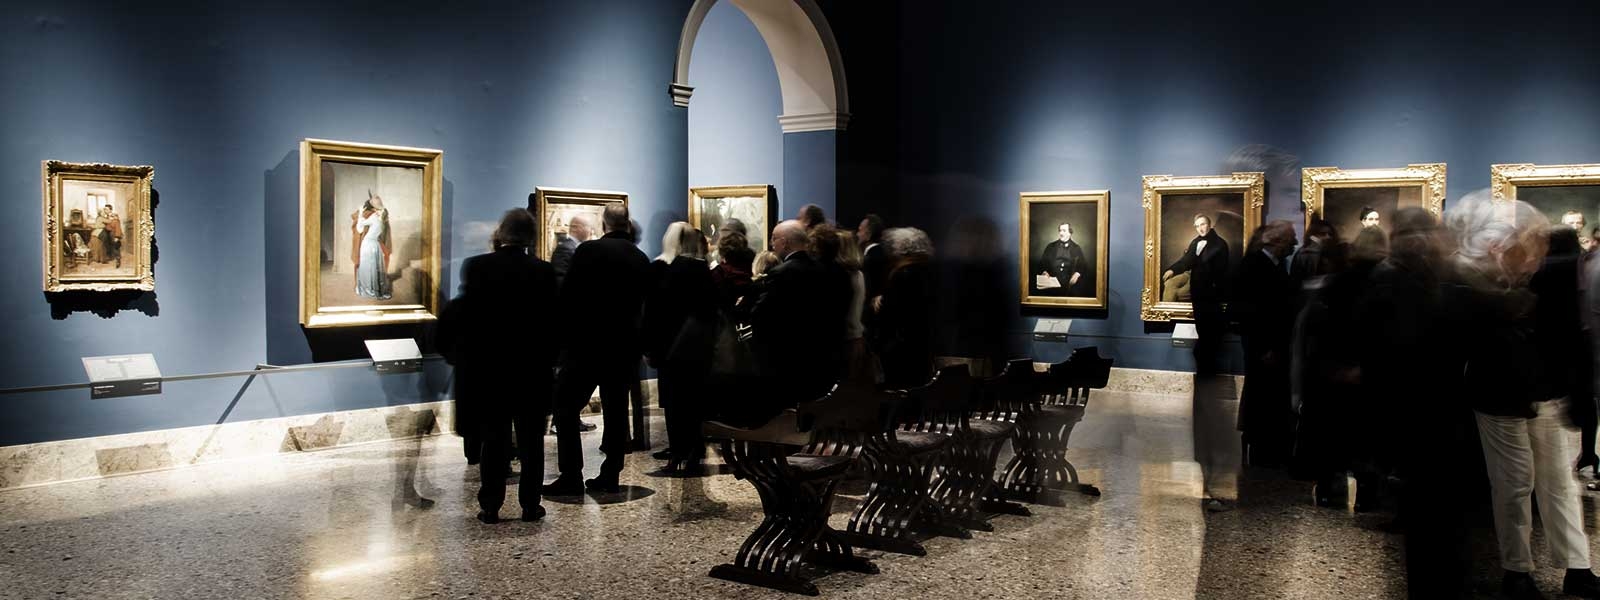 Welcome<br>to the website <br>of the Pinacoteca<br>di Brera